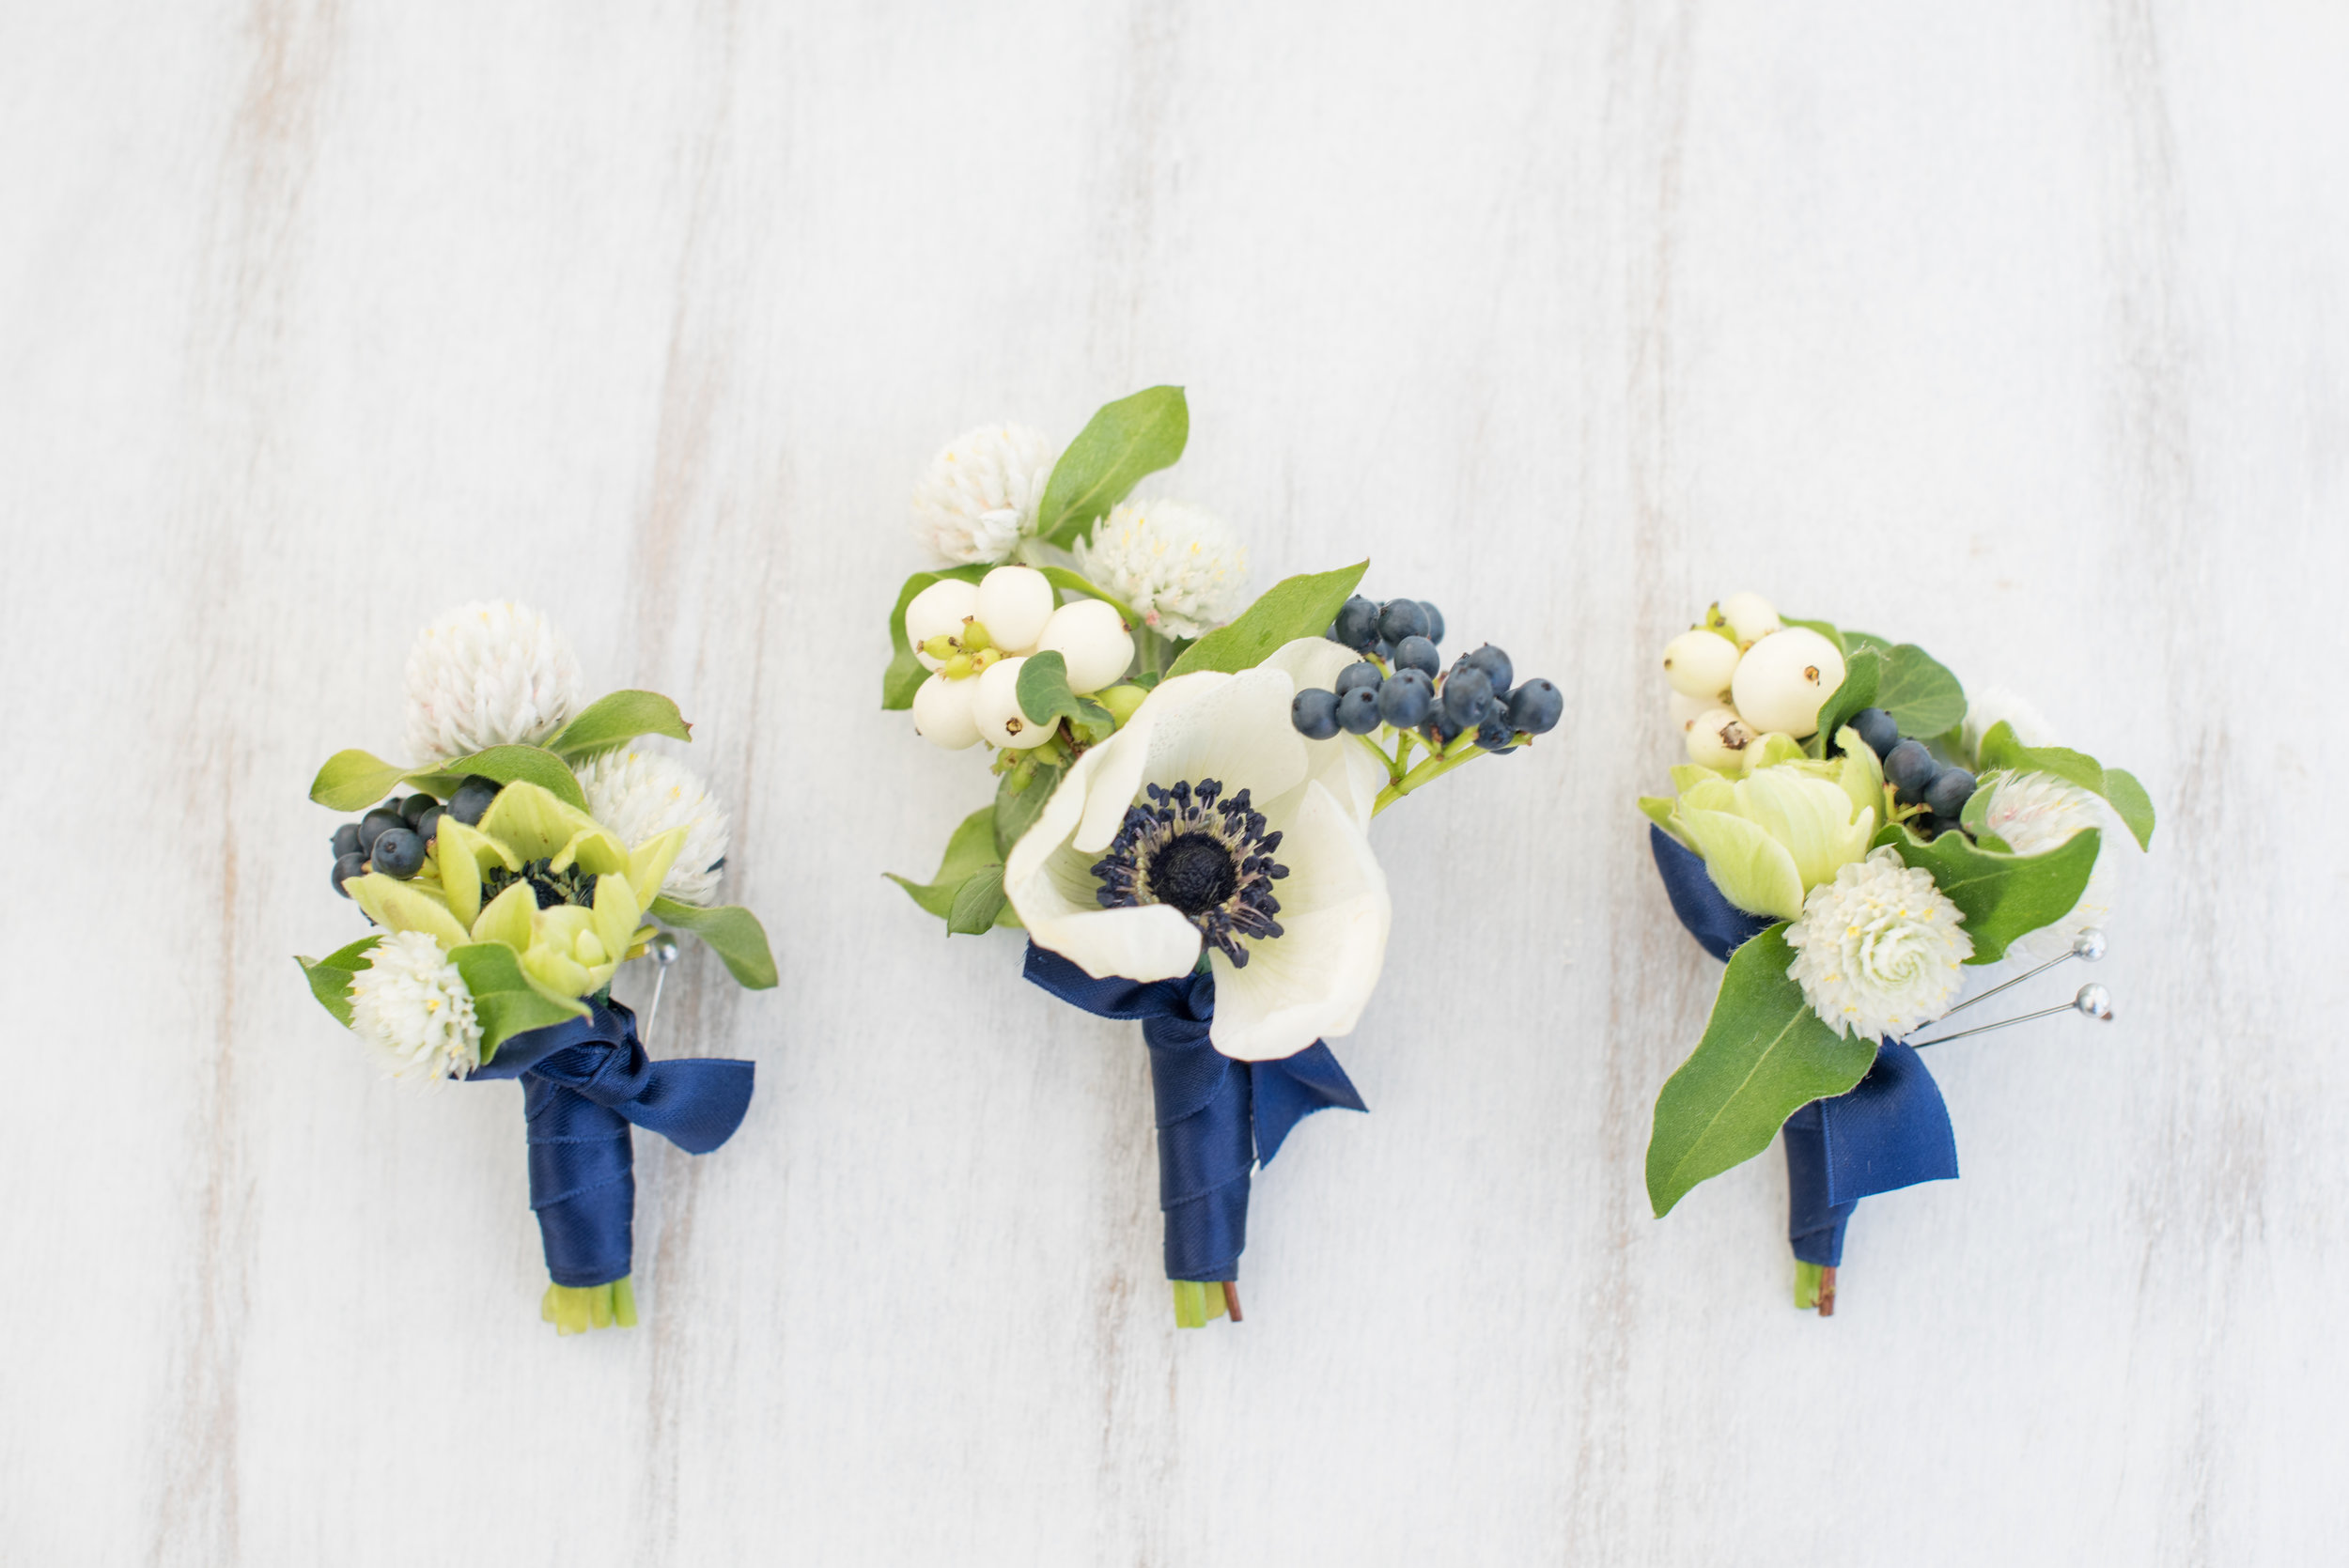 Domino - Creative Ways to Use the Hottest Wedding Color This Year